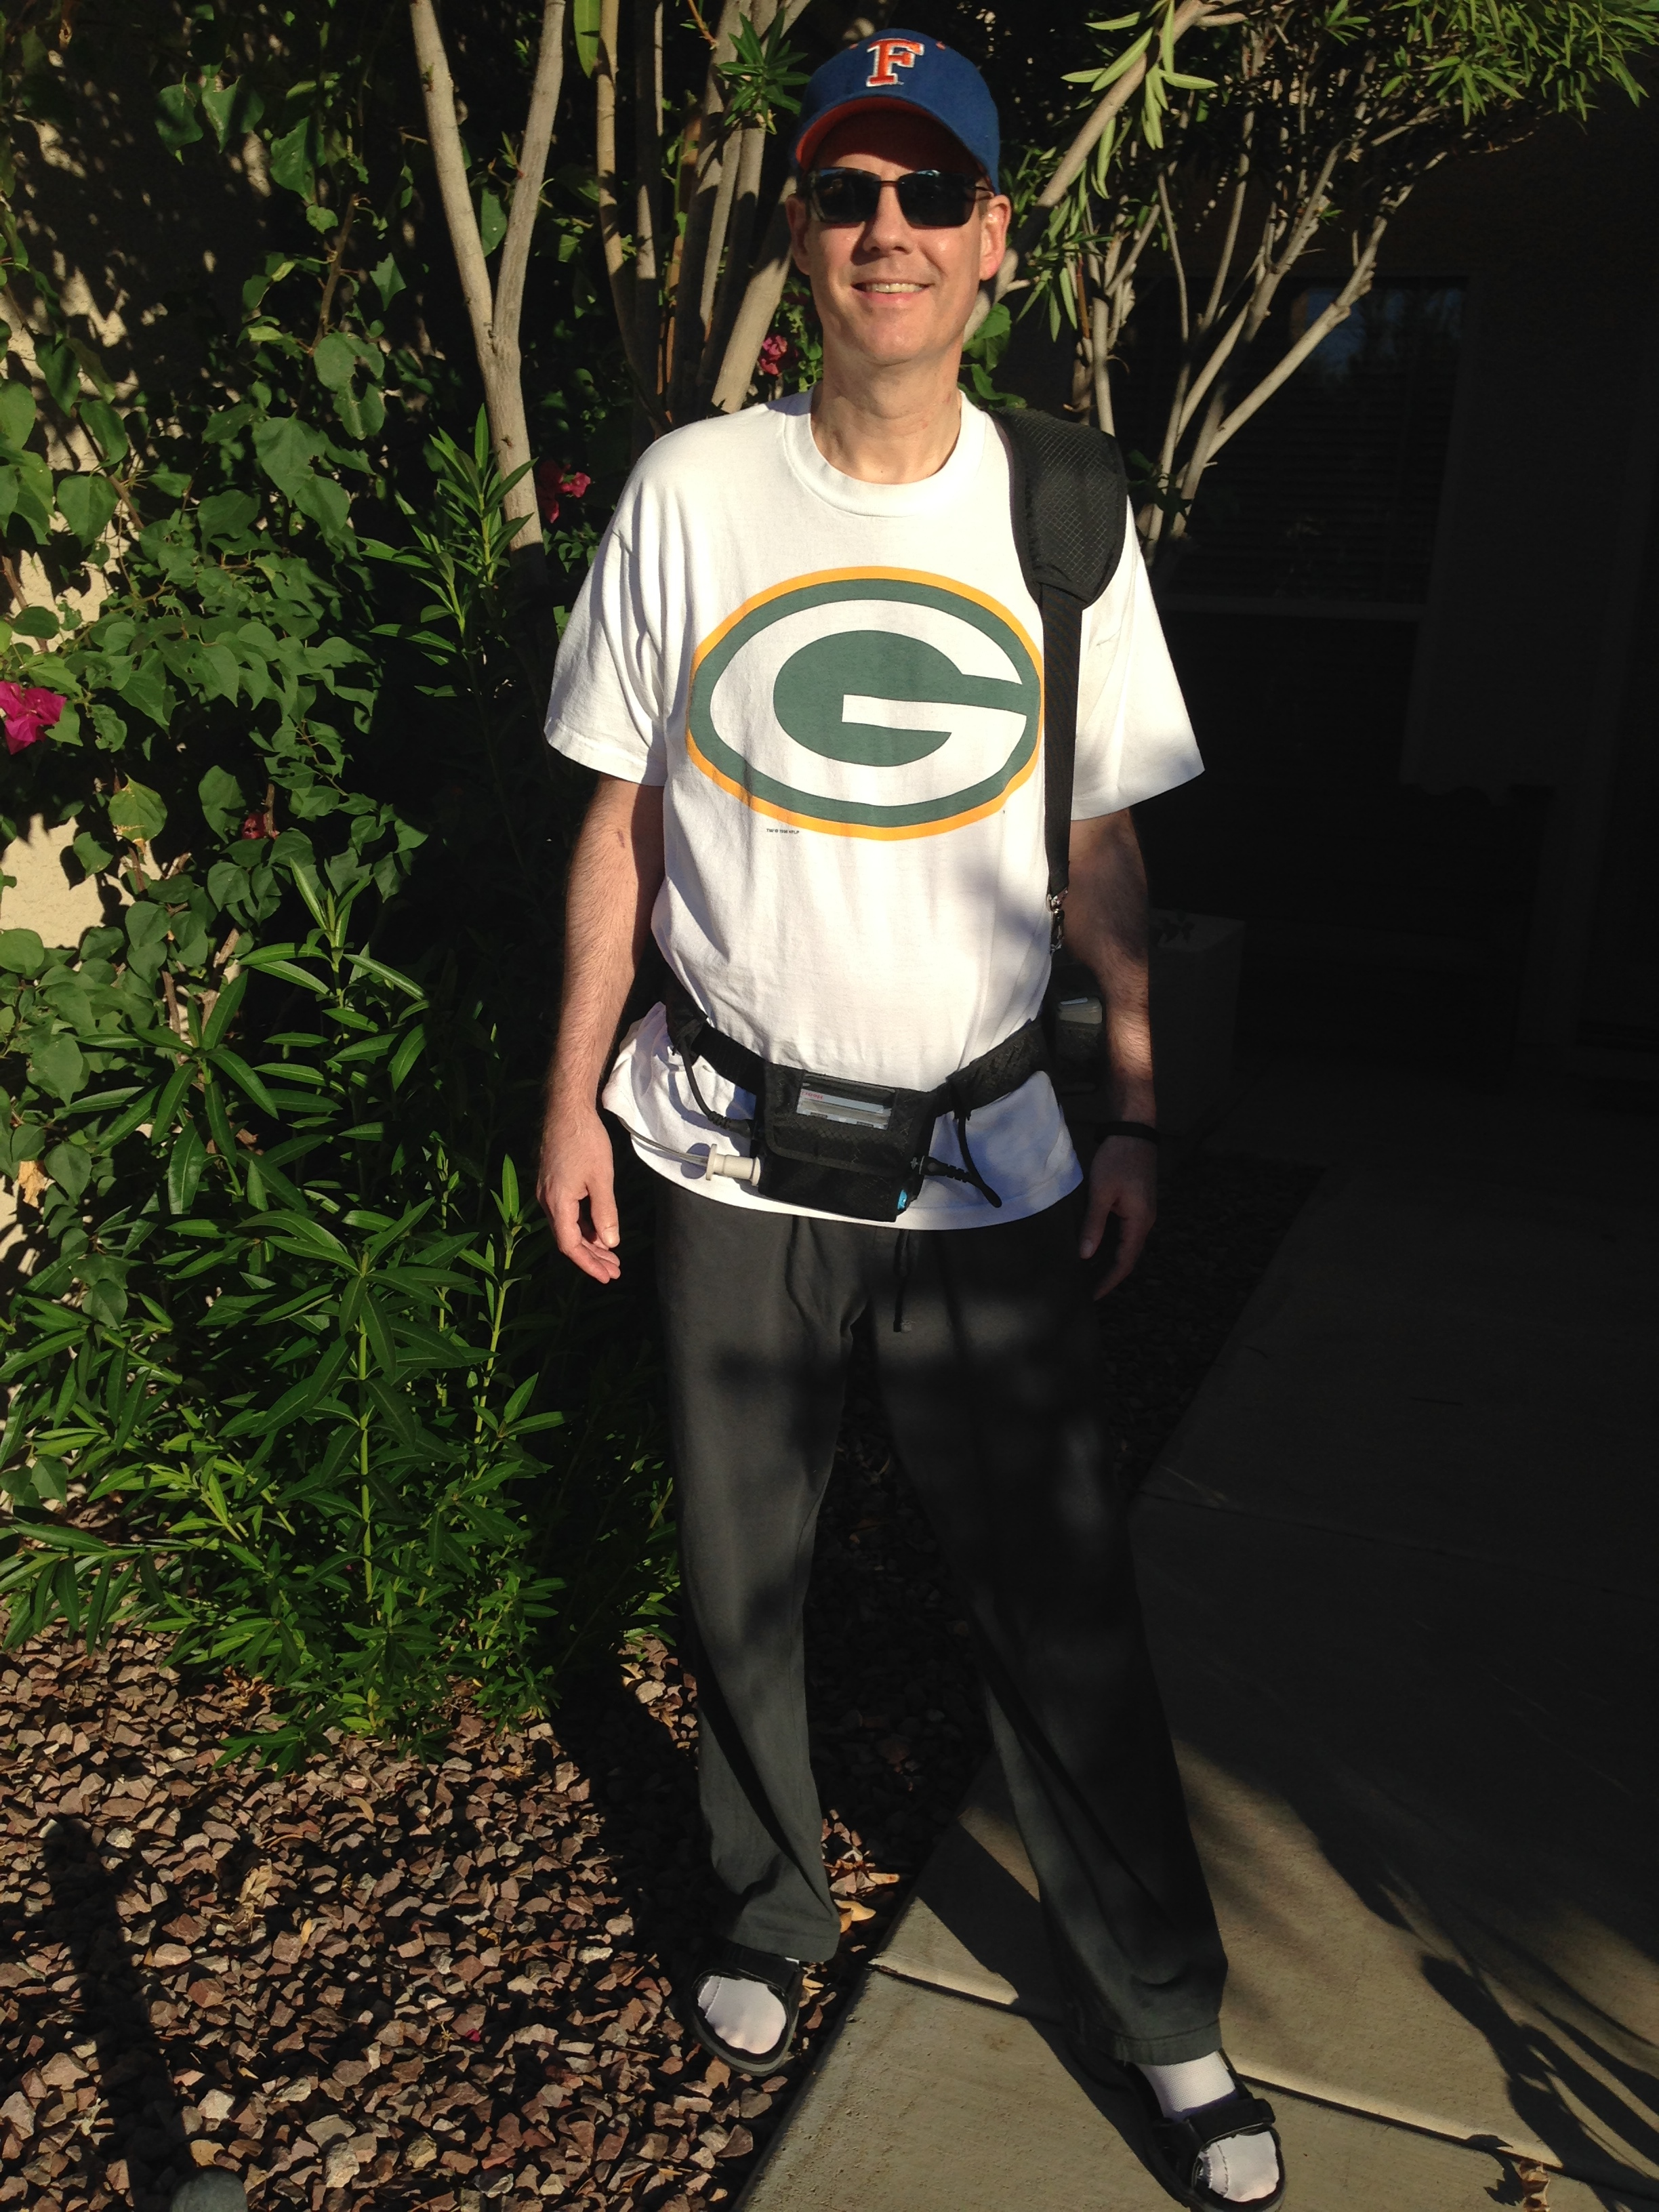 This is a picture of me with my LVAD - using the fanny pack for my controller and batteries, which I could slide to each side of my waist to balance everything out. I found this the most comfortable for when I ventured out and also did my workouts.